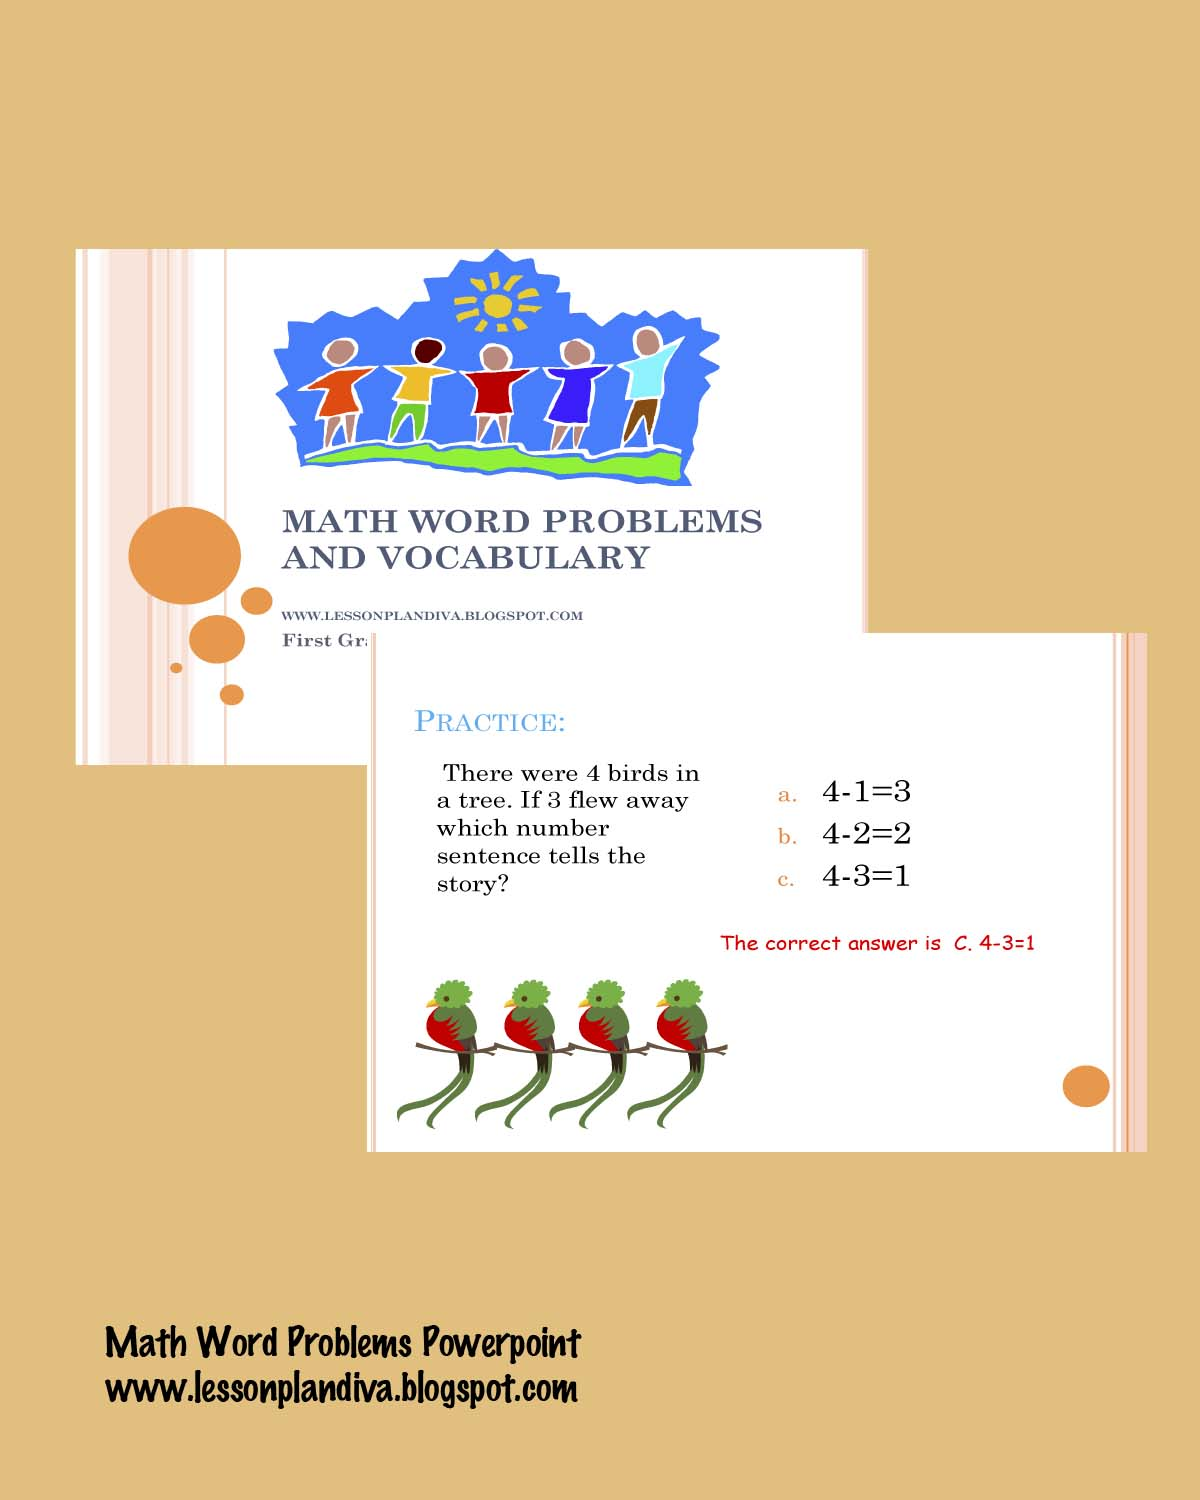 Word Problems Powerpoint - The Lesson Plan Diva